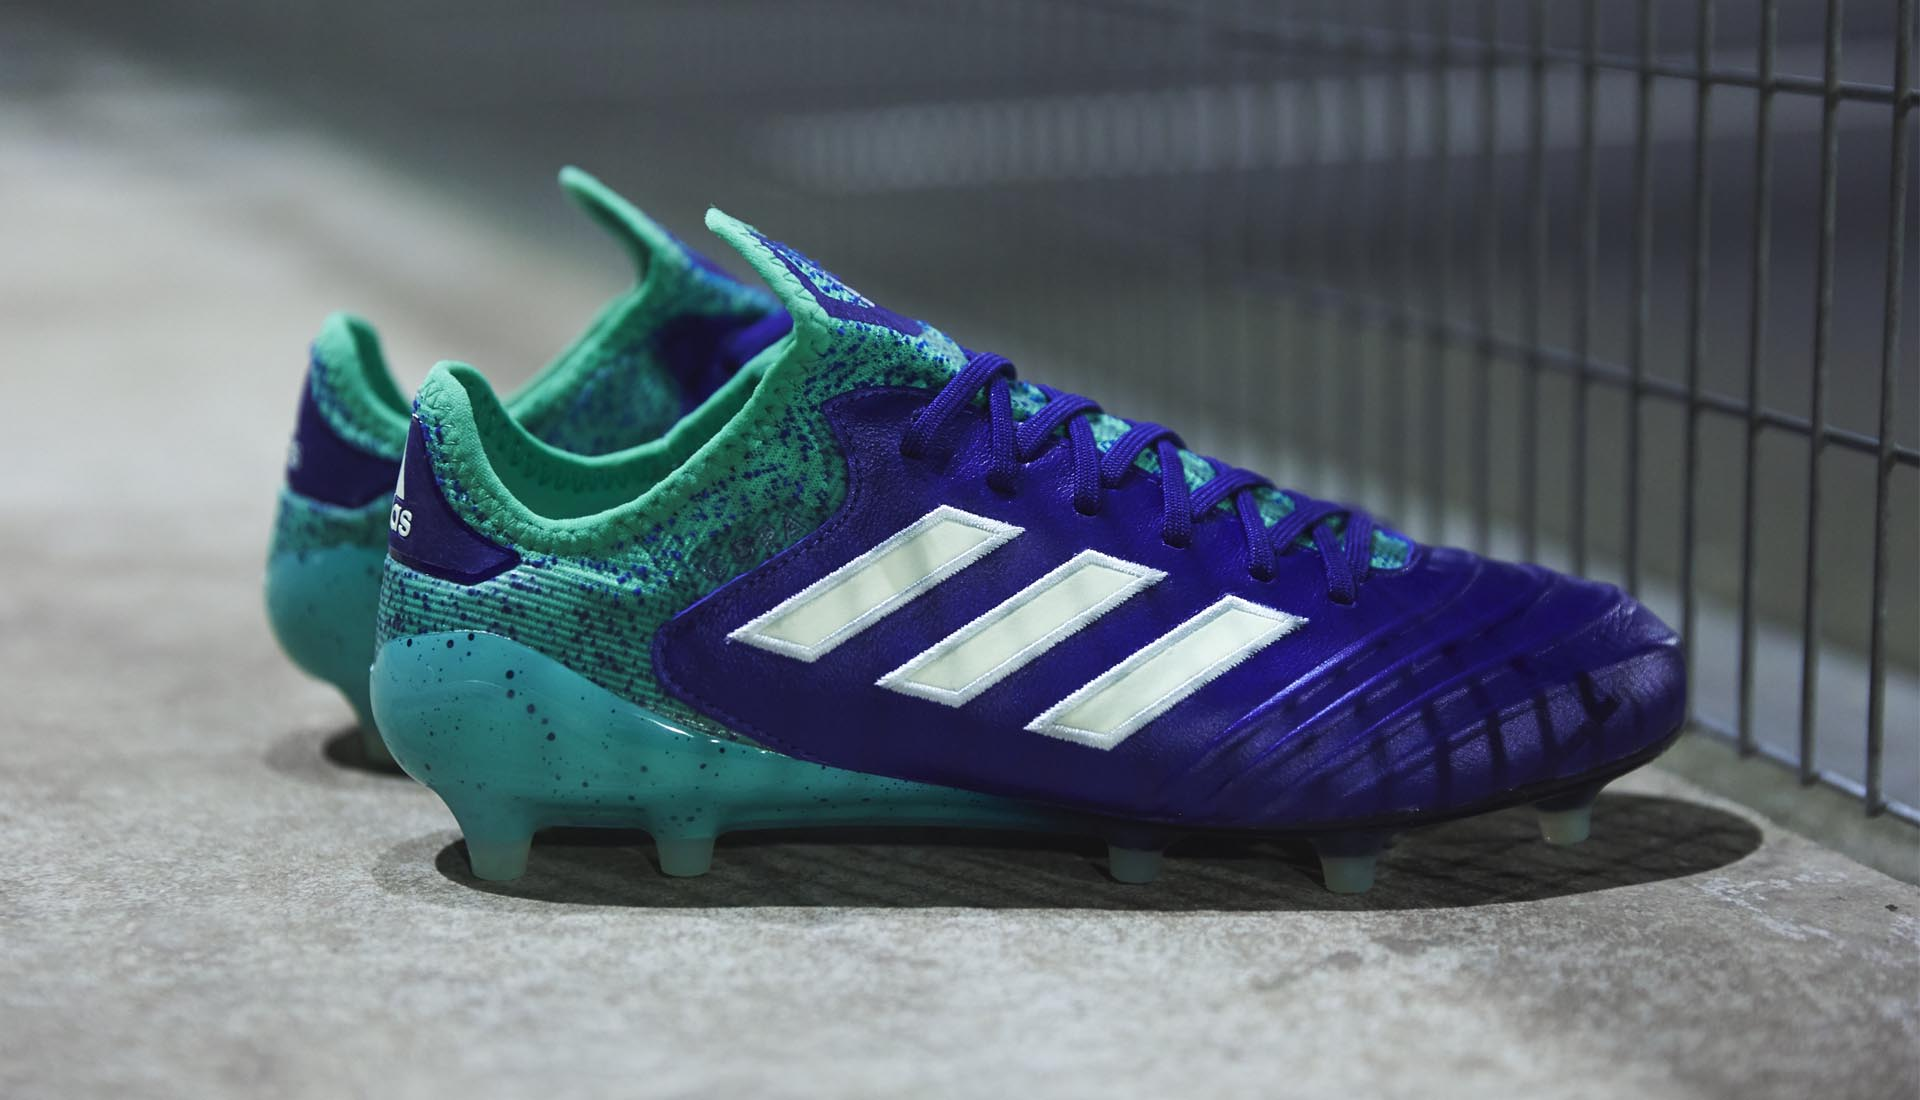 La chaussure de foot adidas COPA18 Deadly Strike